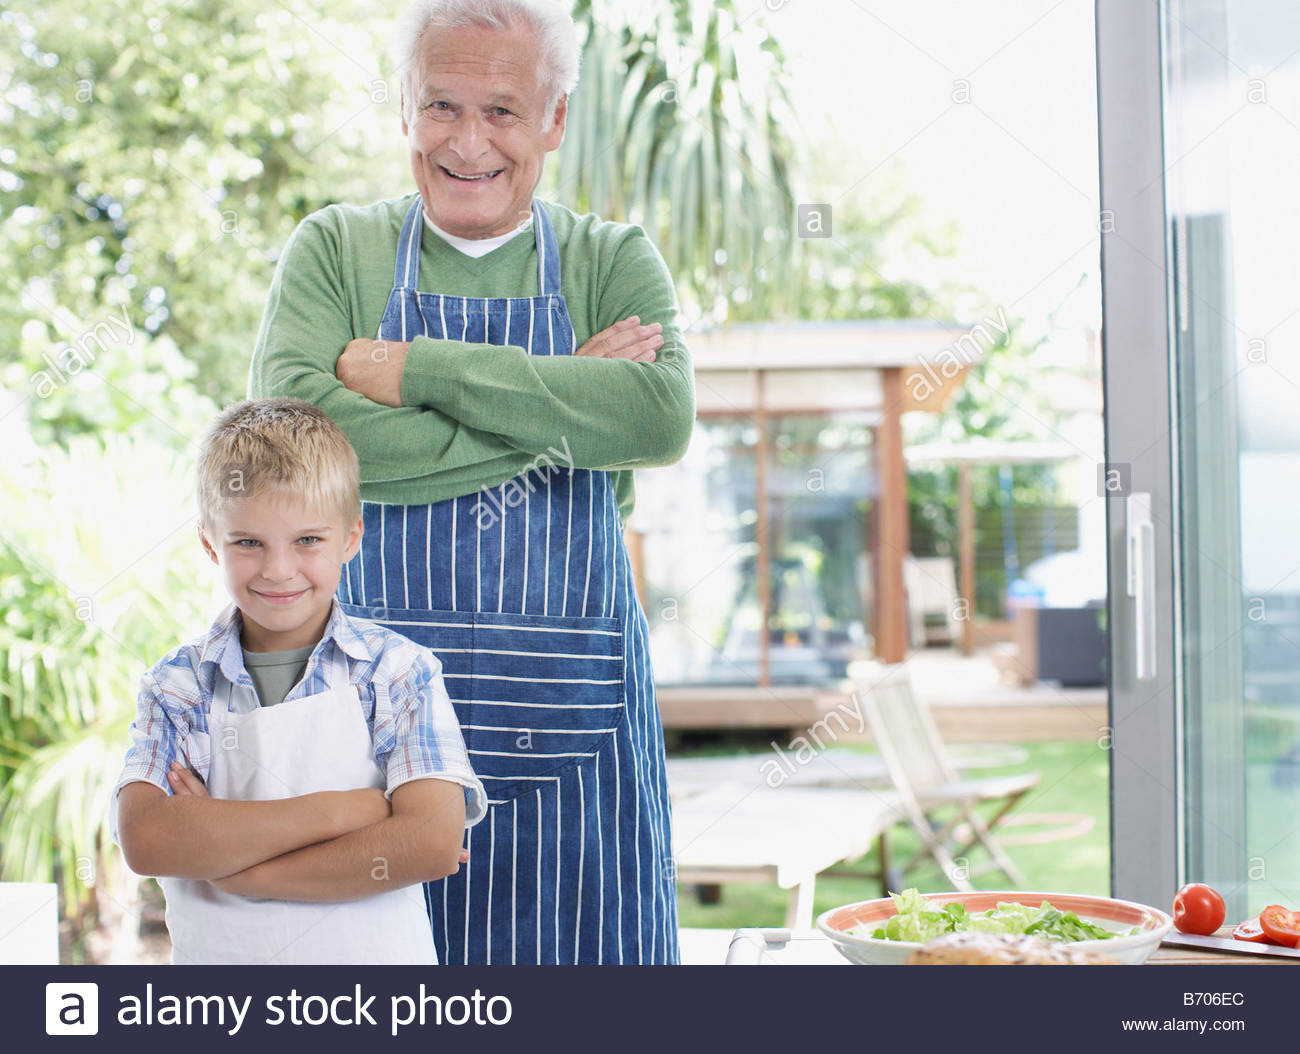 Grandfather and grandson preparing healthy meal - Stock Image